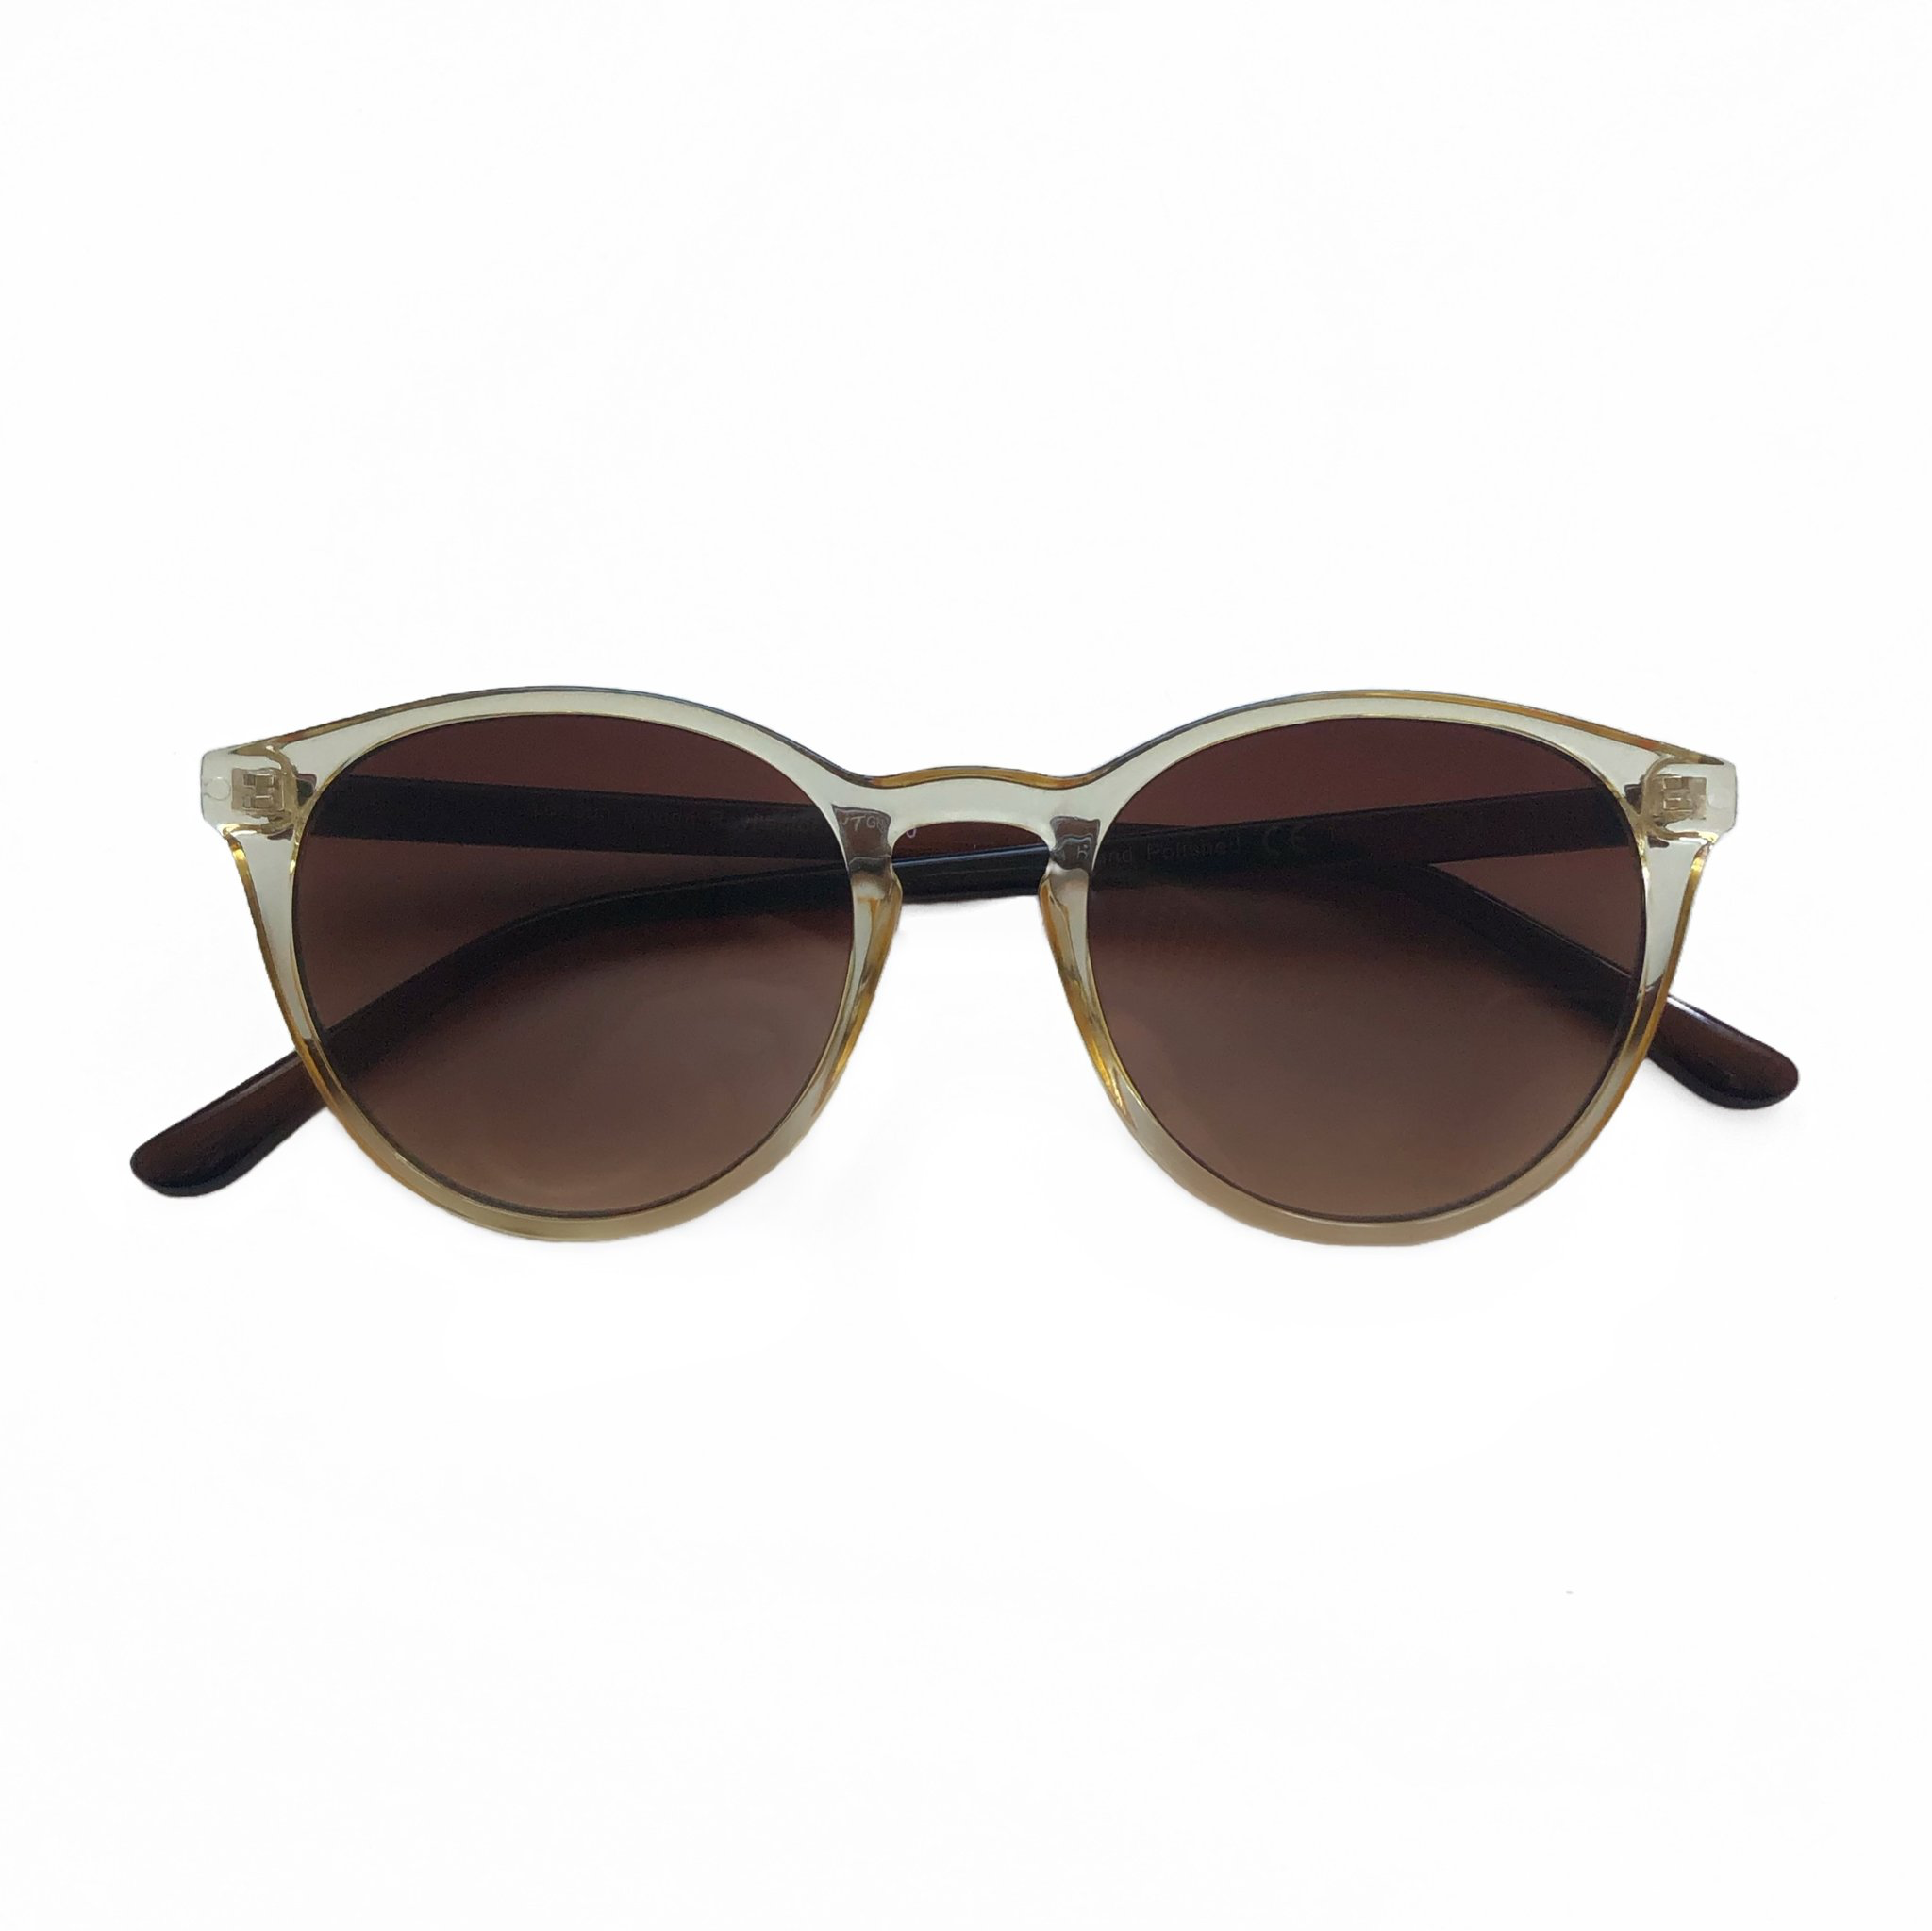 Debra Sunglasses - Two Tone